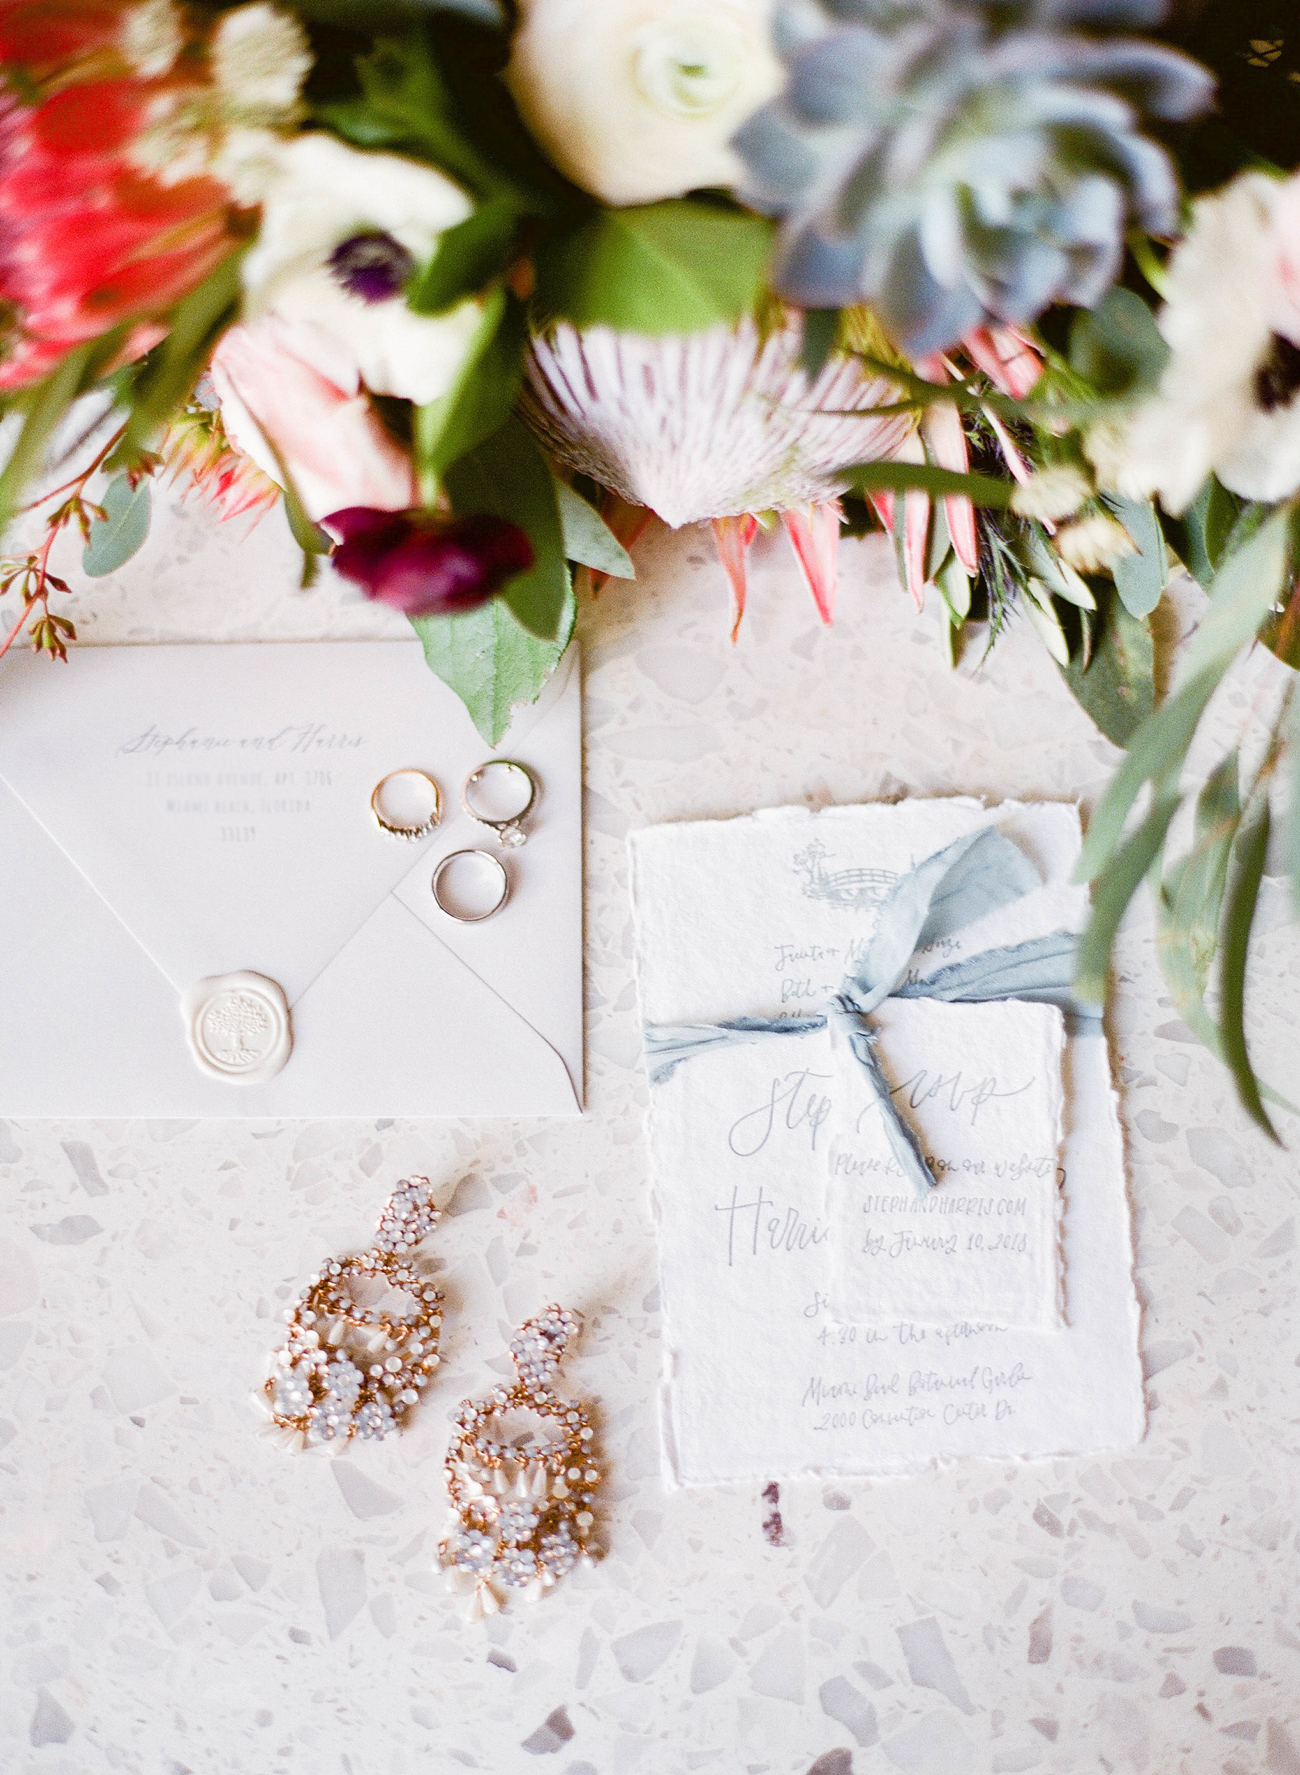 organic handmade and hand torn paper wedding invites with blue ribbon